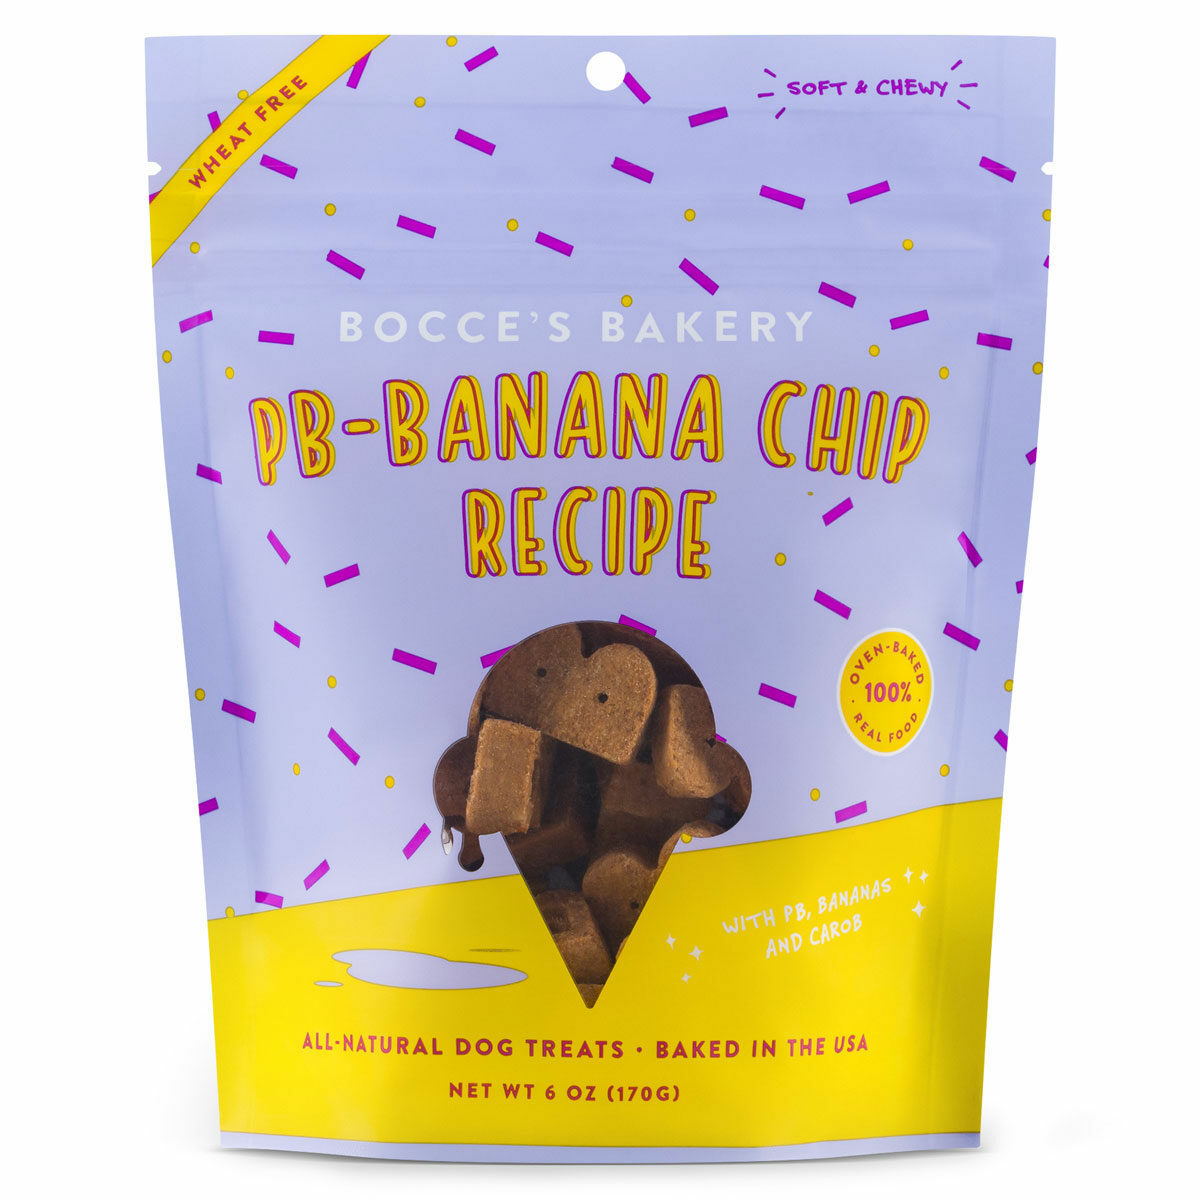 Bocce's Bakery Scoop Shop PB-Banana Chip Dog Biscuits